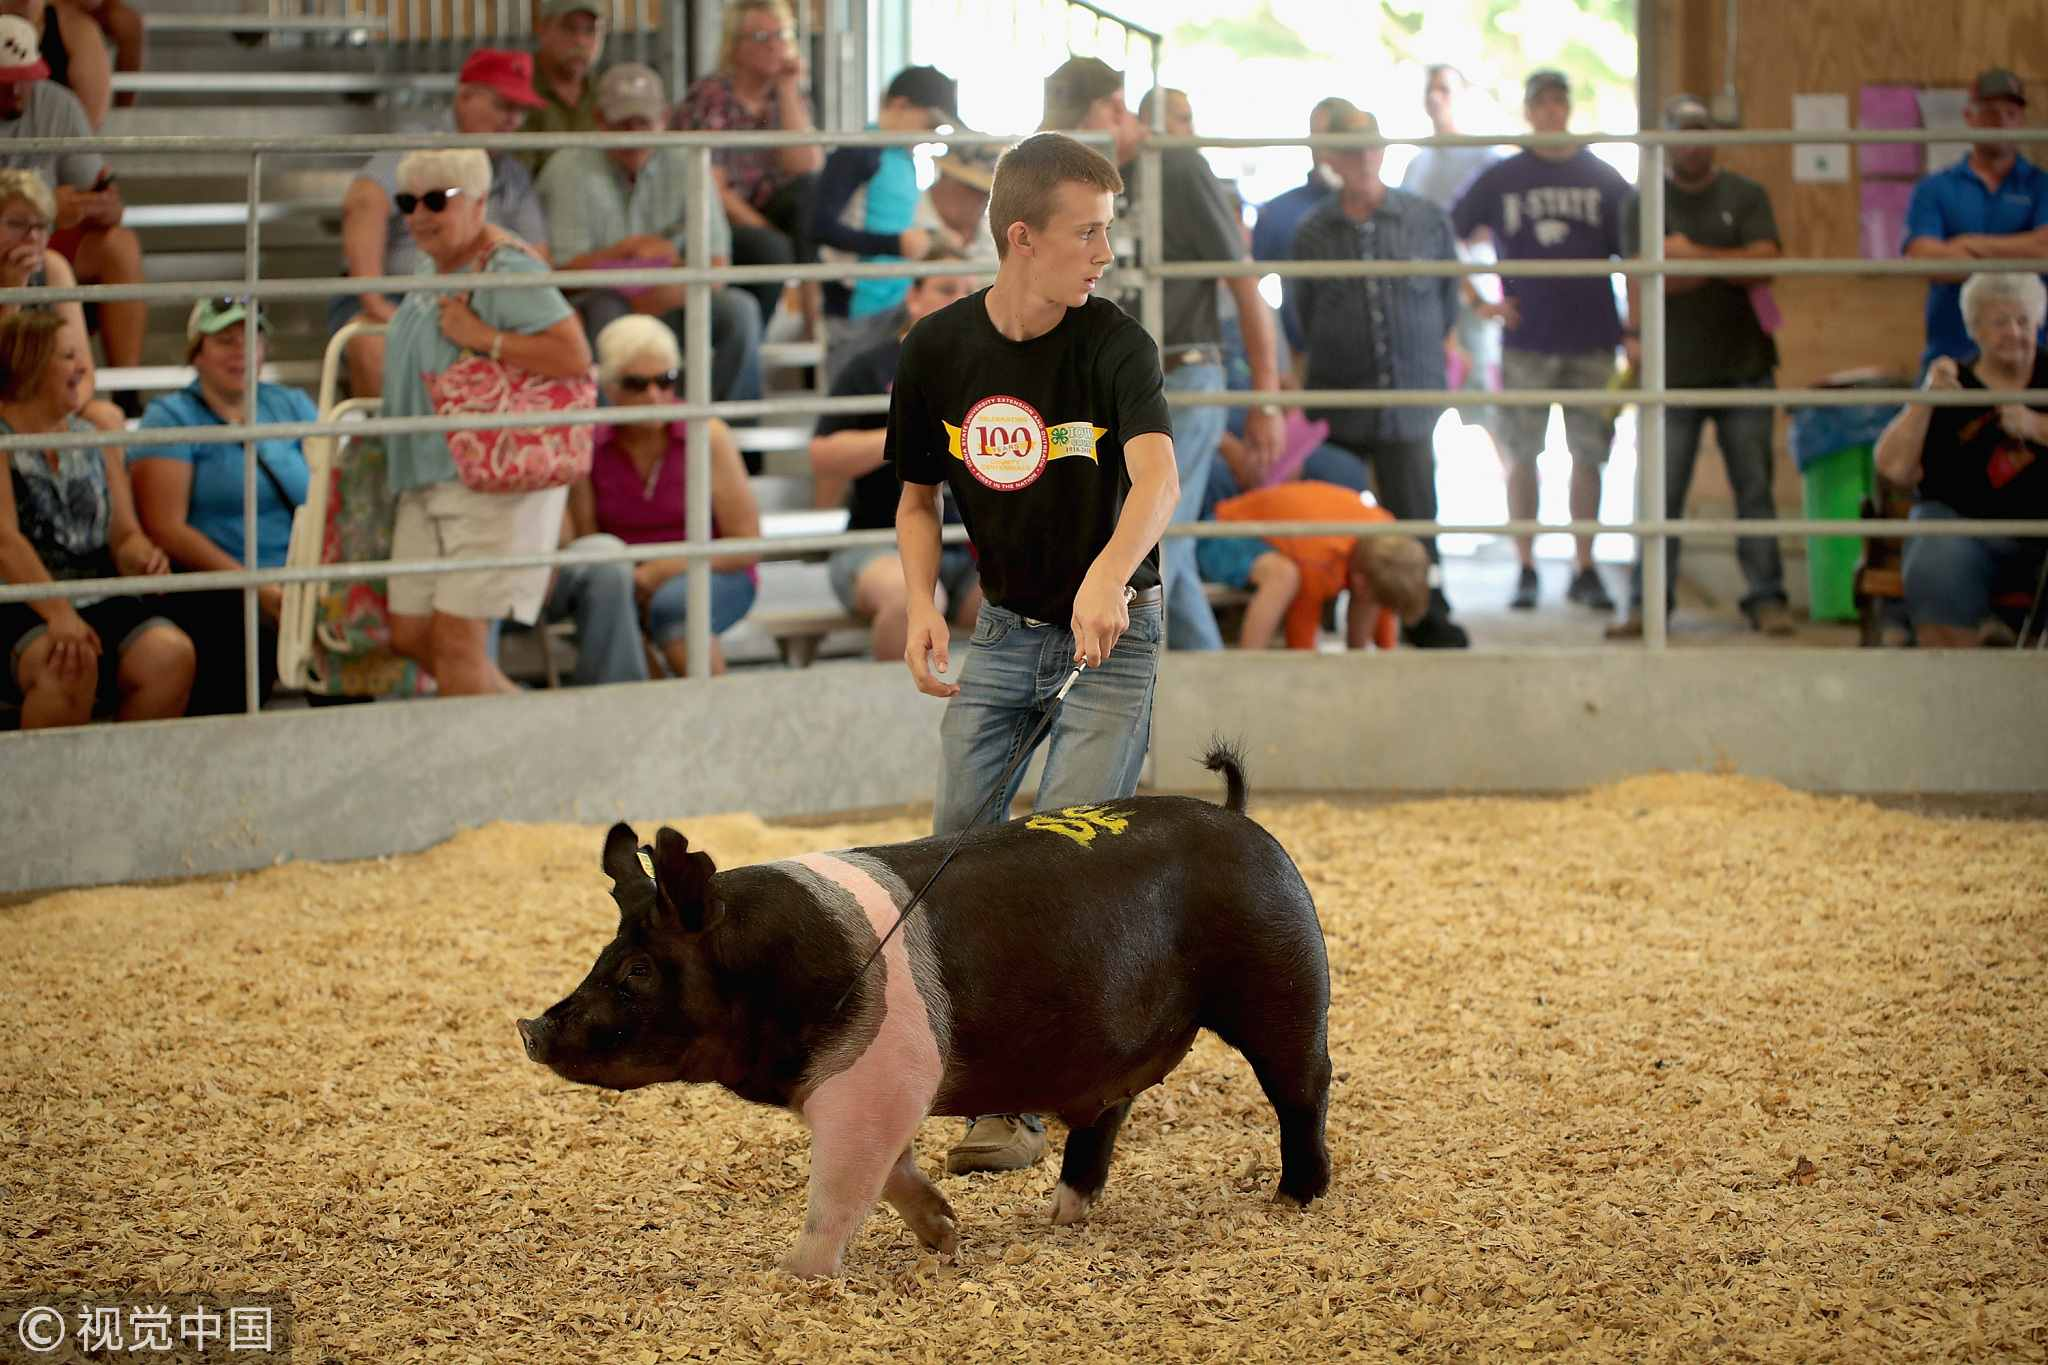 A contestant shows a hog during competition at the Iowa County Fair on July 13, 2018 in Marengo, Iowa. Farmers in Iowa and the rest of the country, who are already faced with decade-low profits, are bracing for the impact a trade war with China may have on their bottom line going forward. [Photo: VCG]